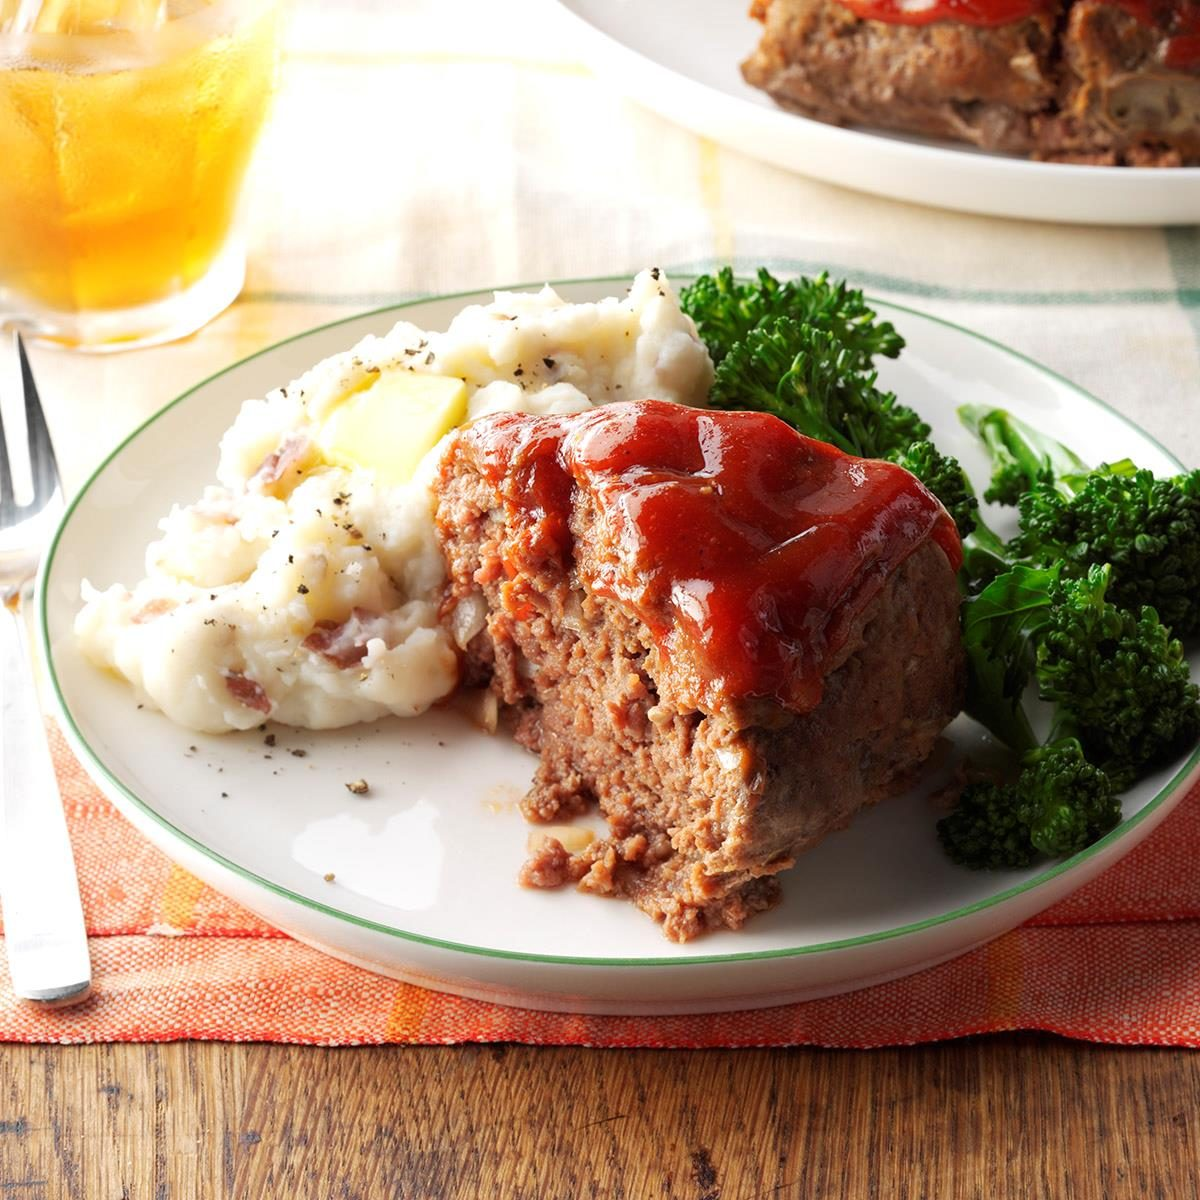 Day 8: Meat Loaf from the Slow Cooker